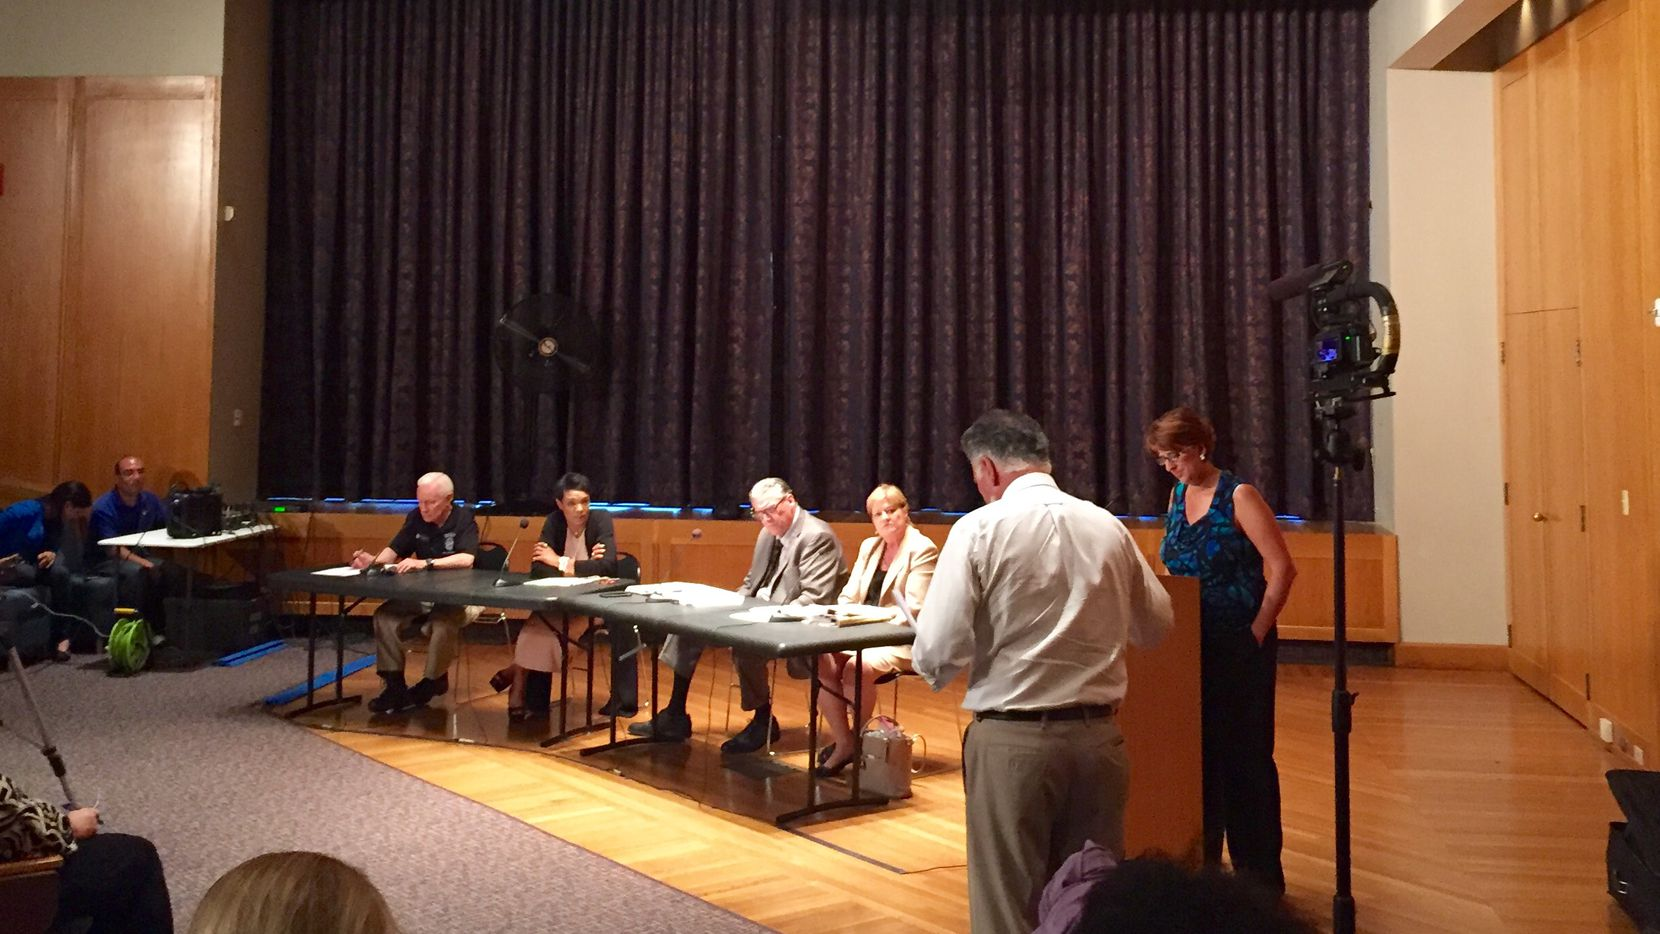 Dallas police crisis intervention supervisor Dave Hogan (left), State District Judge Dominique Collins, Dallas County director of criminal justice Ron Stretcher and Dallas County Commissioner Theresa Daniel took questions from attendees at a community forum on mental health and homelessness Tuesday night at the Dallas Public Library.